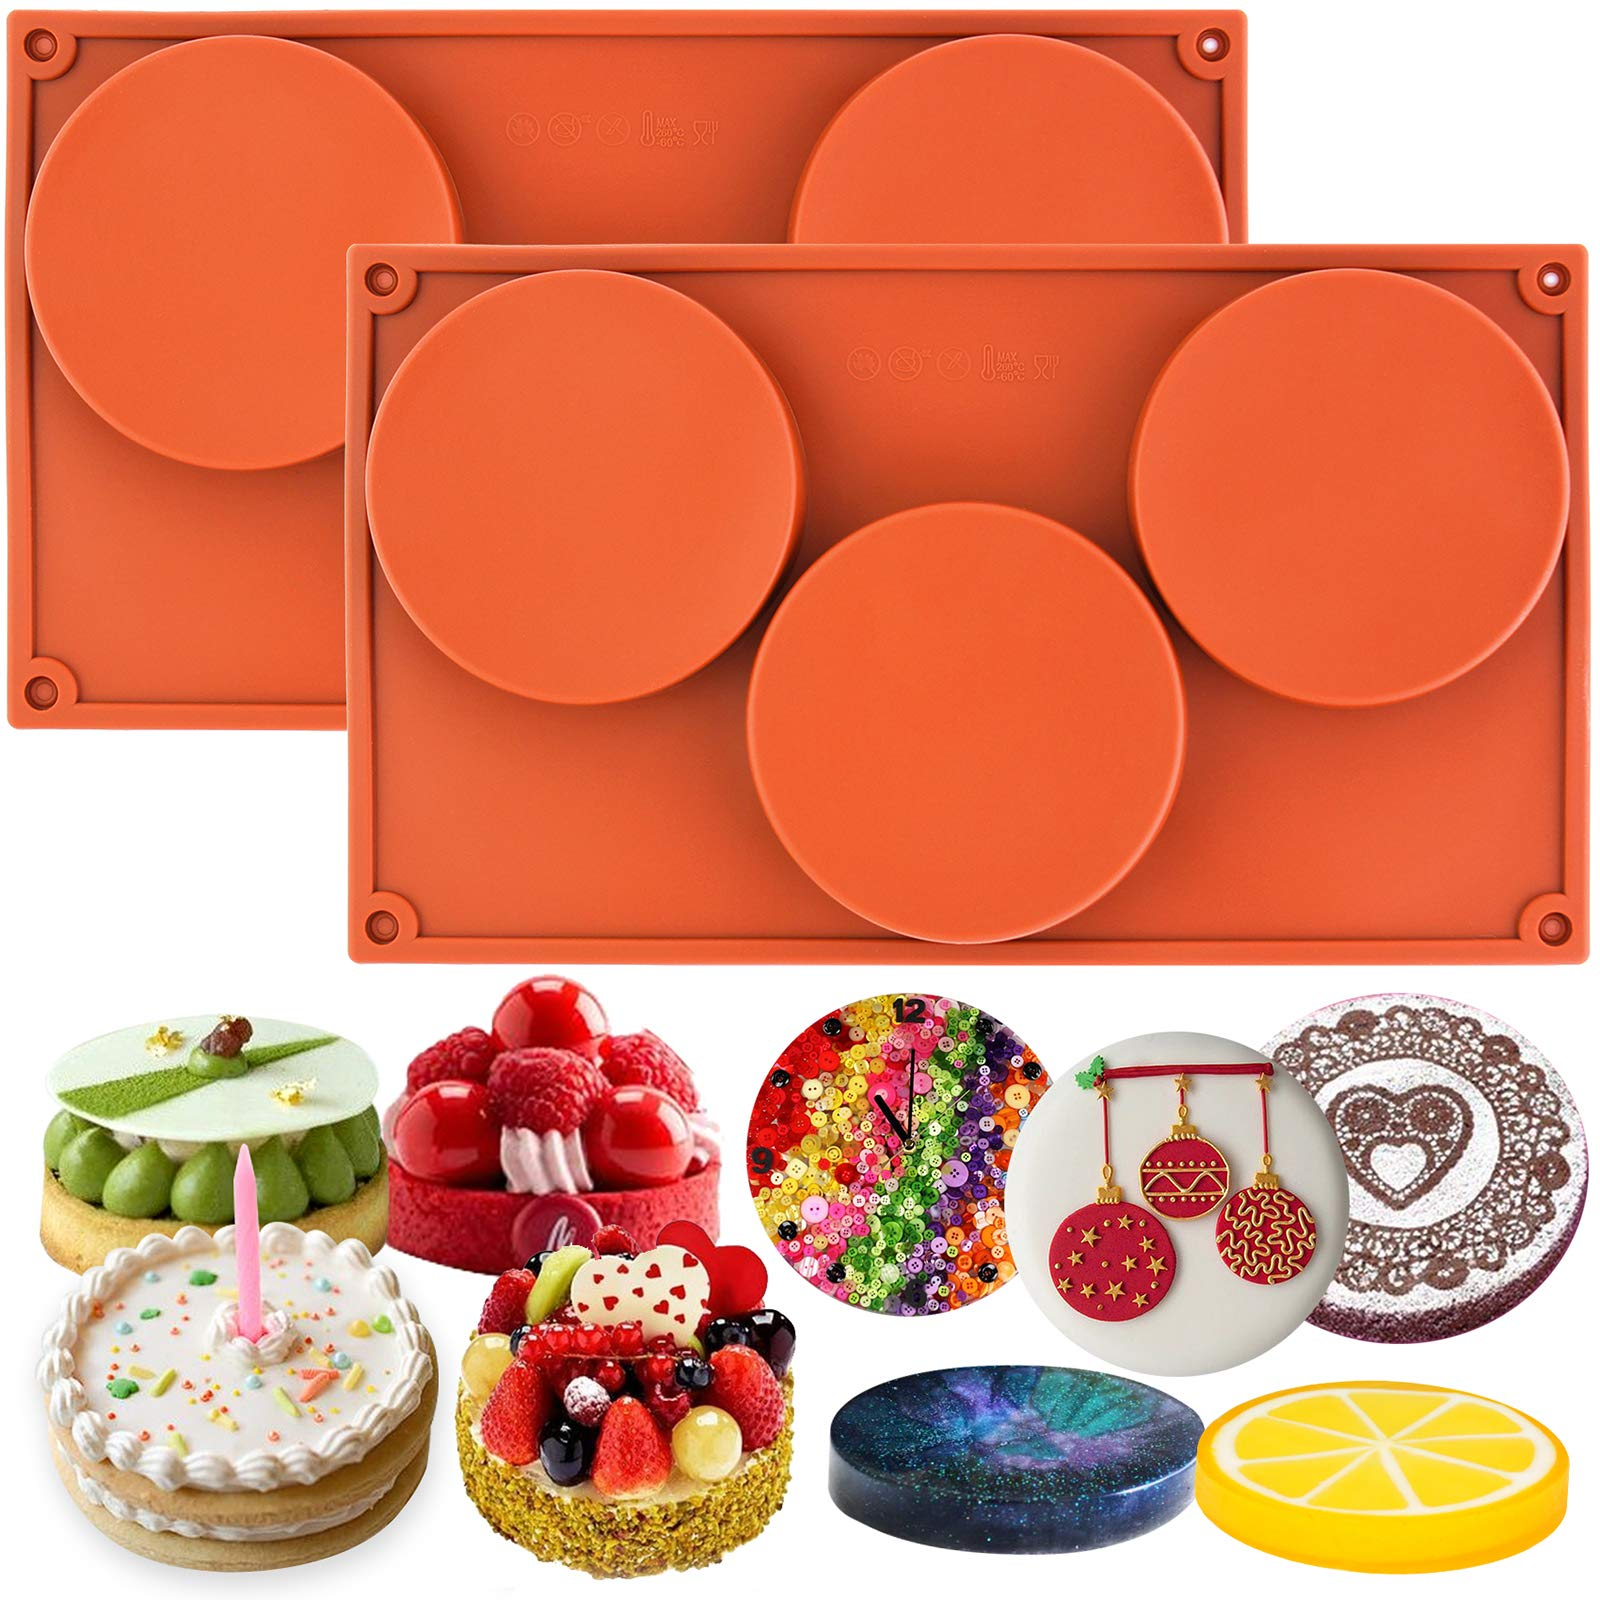 Funshowcase 3-Cavity Large Round Disc Candy Silicone Mold